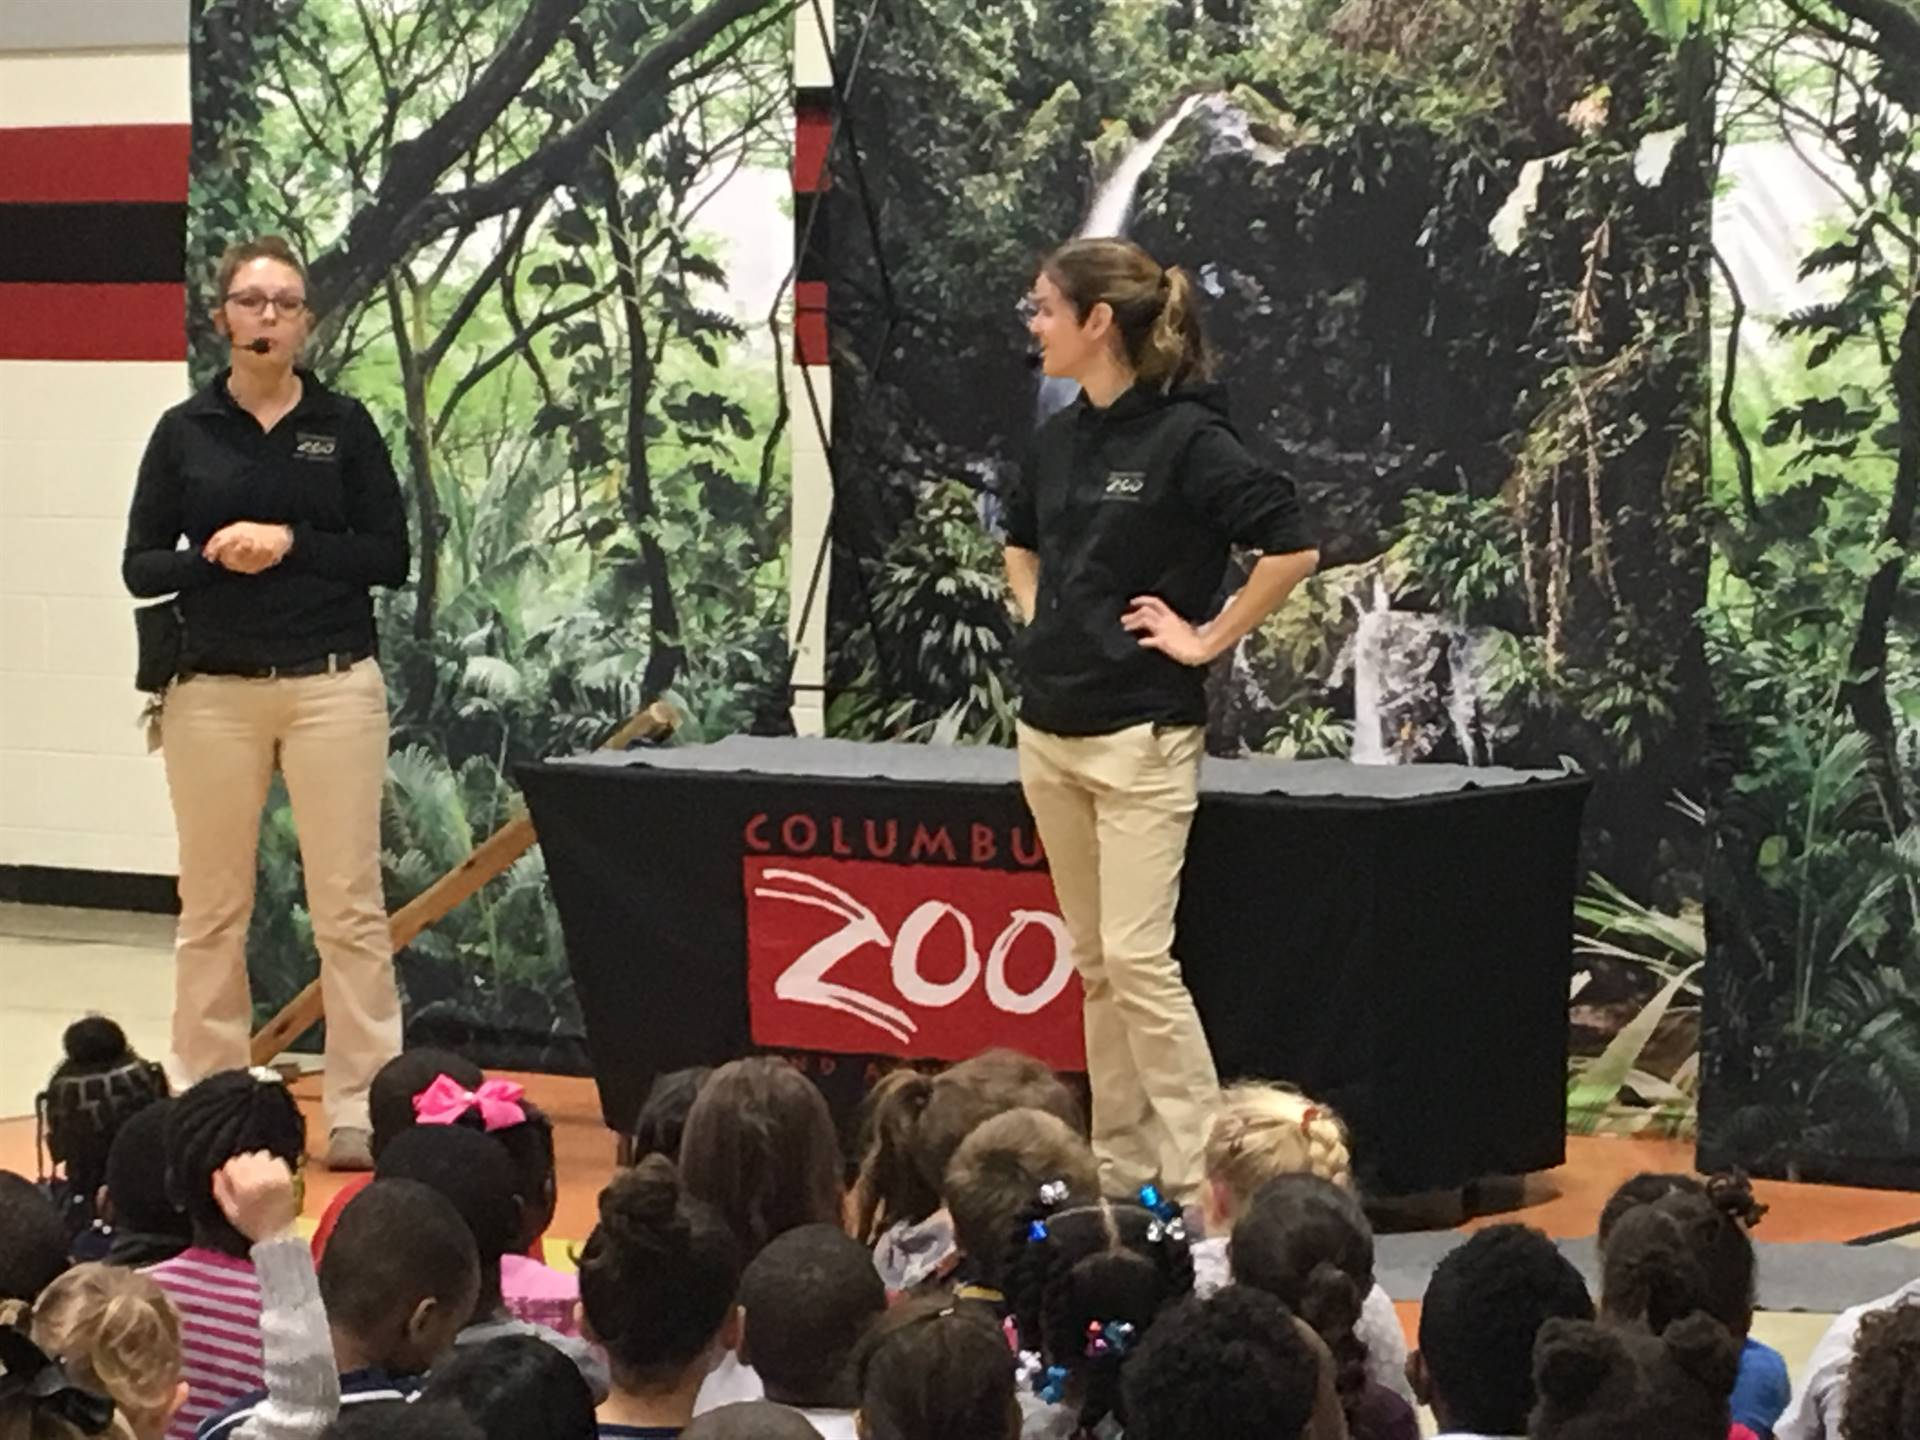 The Columbus Zoo came to visit!